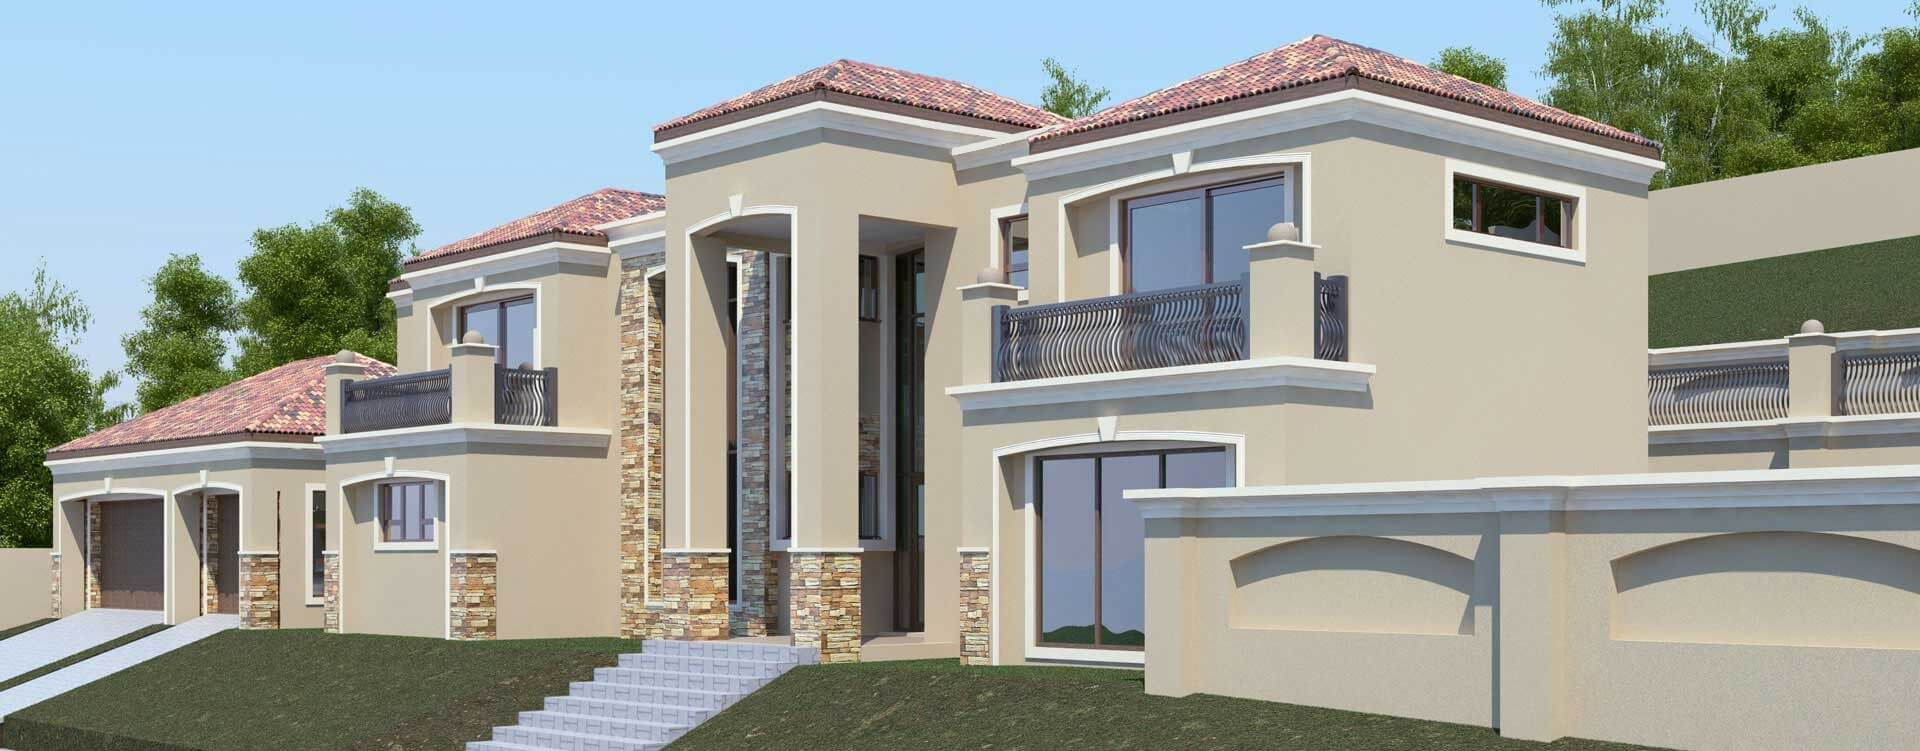 Nethouseplans affordable house plans for Tuscan home plans